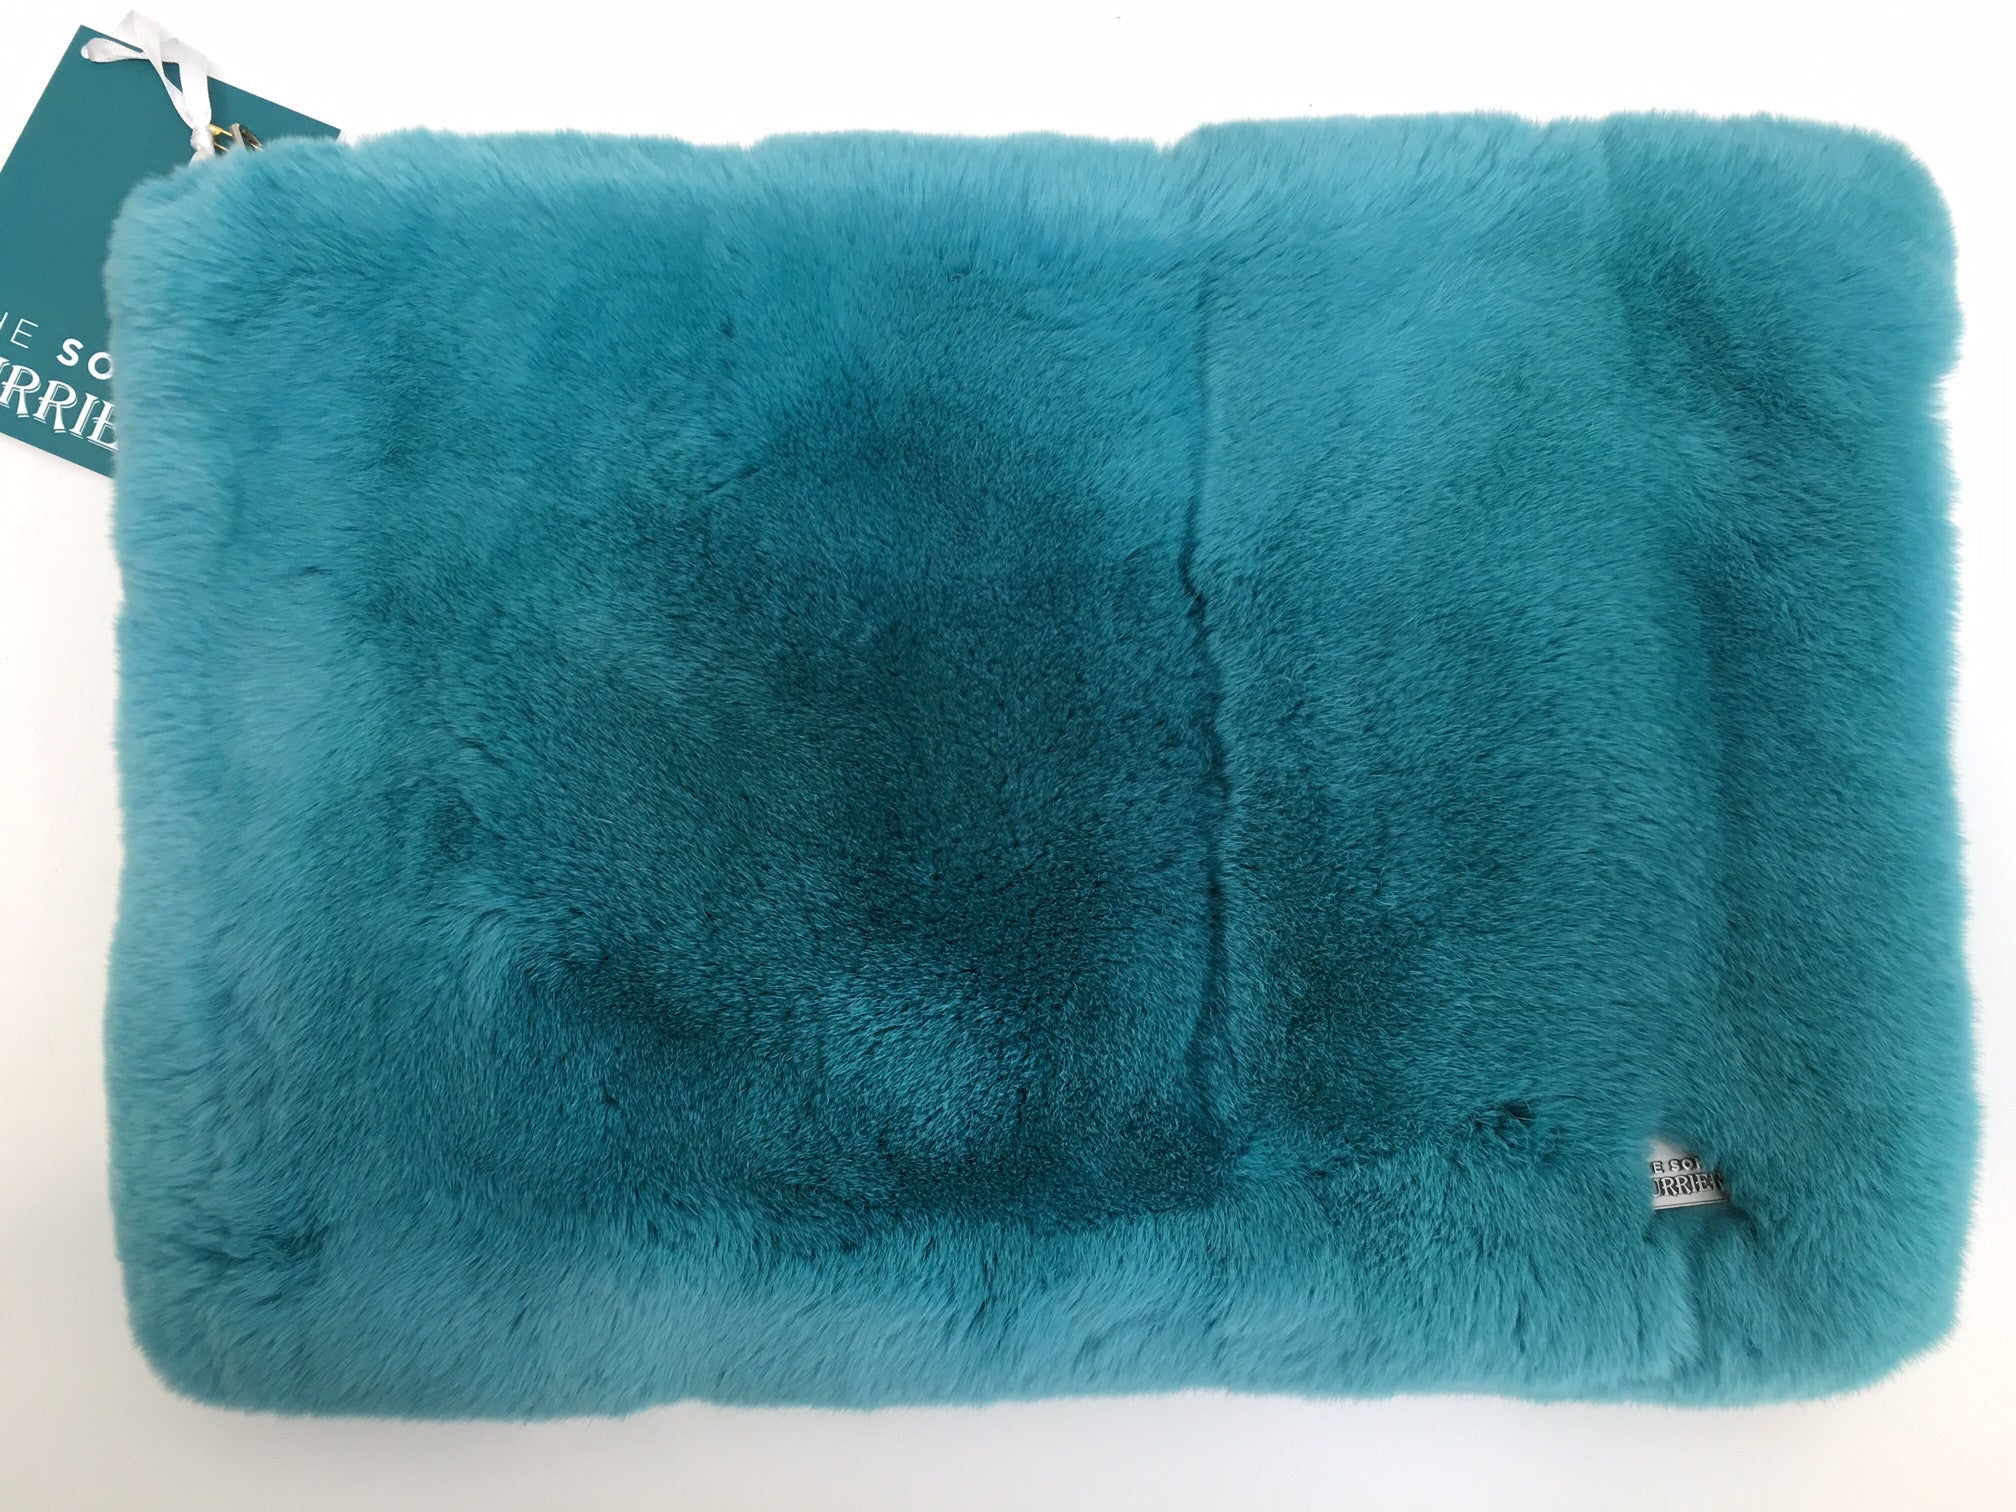 x Oversized Rex Clutch Bag / Laptop Case in Teal - The Soho Furrier